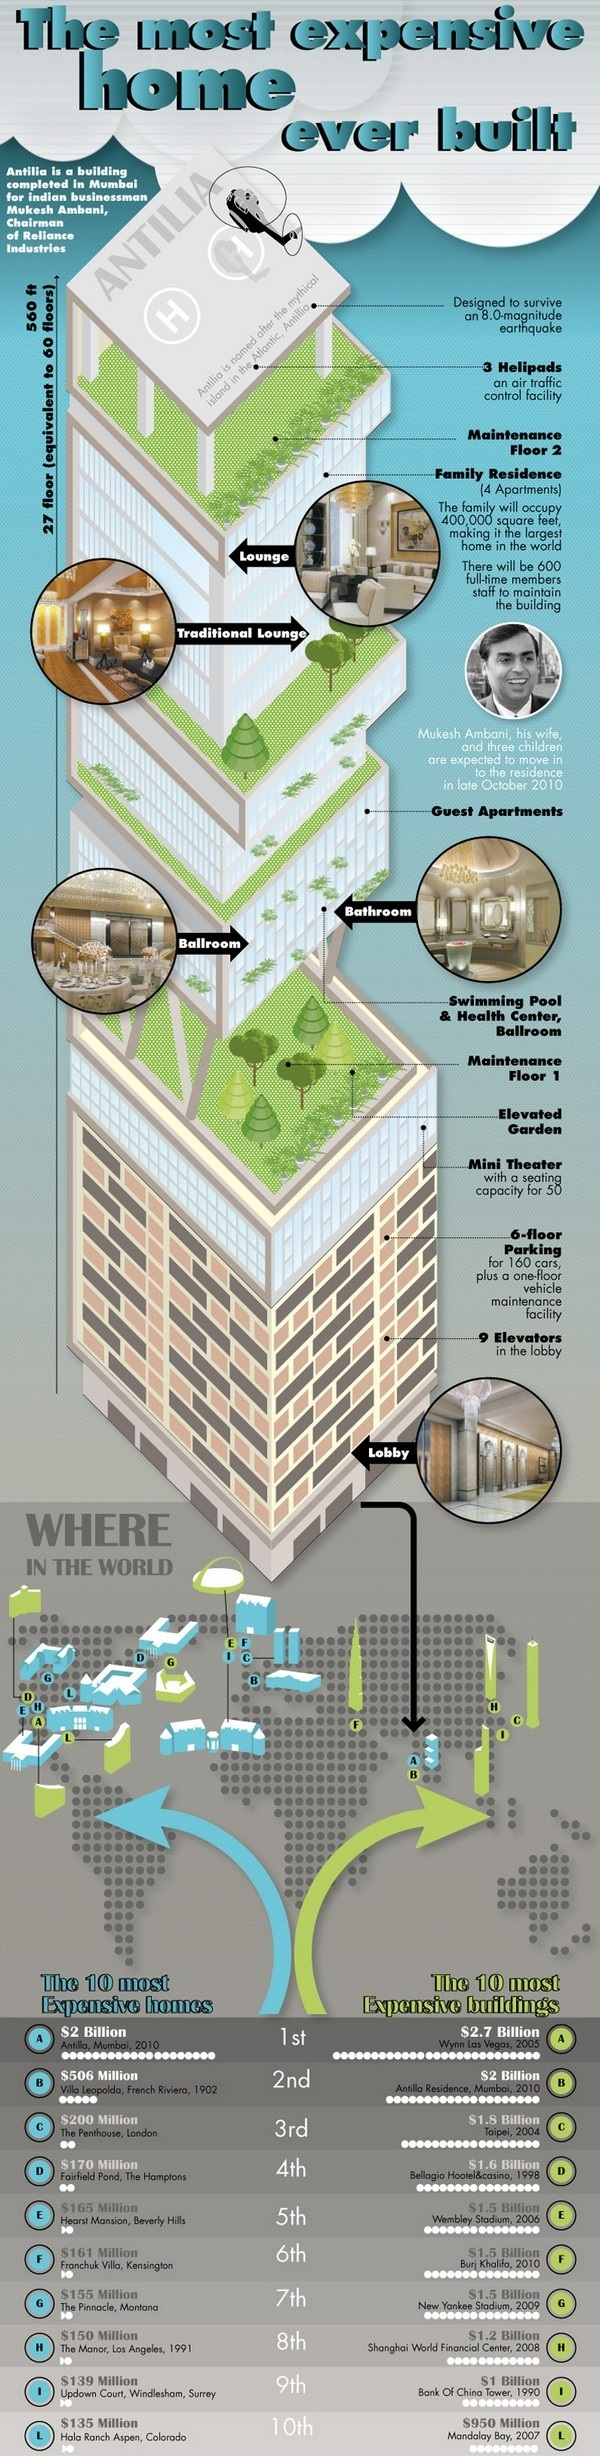 Antilia is most expensive home in Mumbai for Indian businessman ...